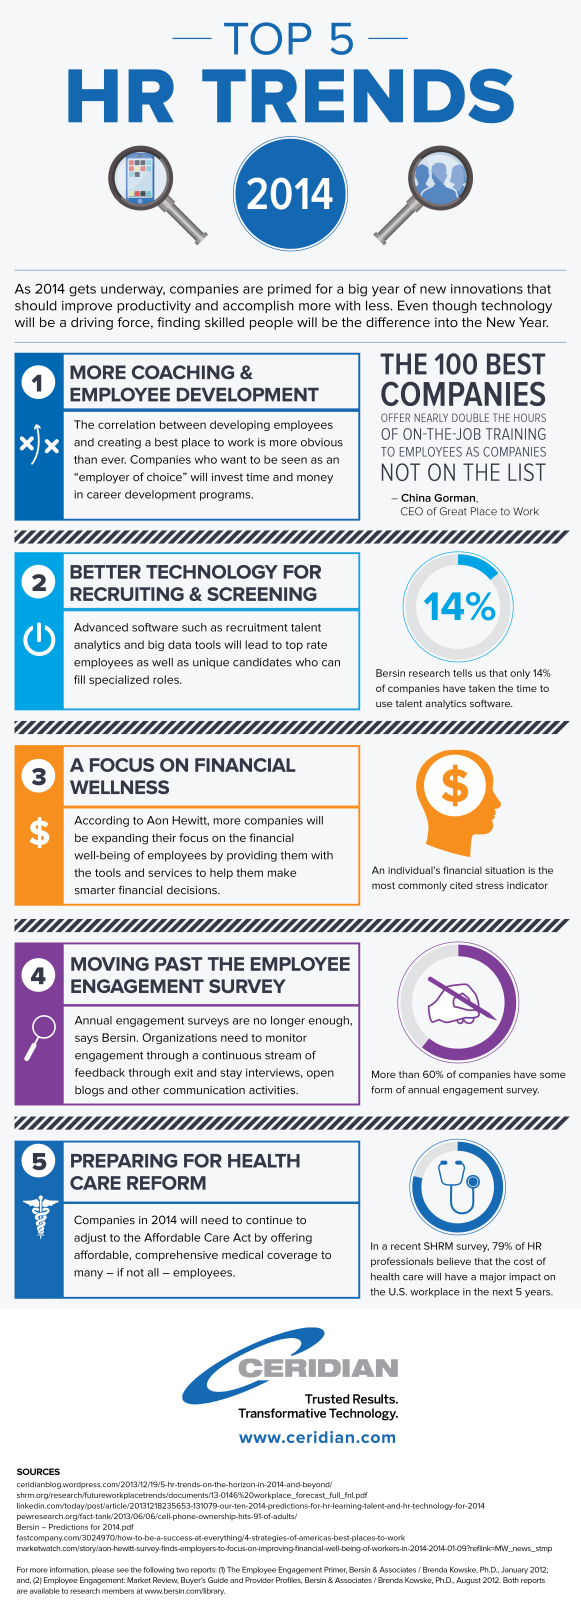 Human resources trends